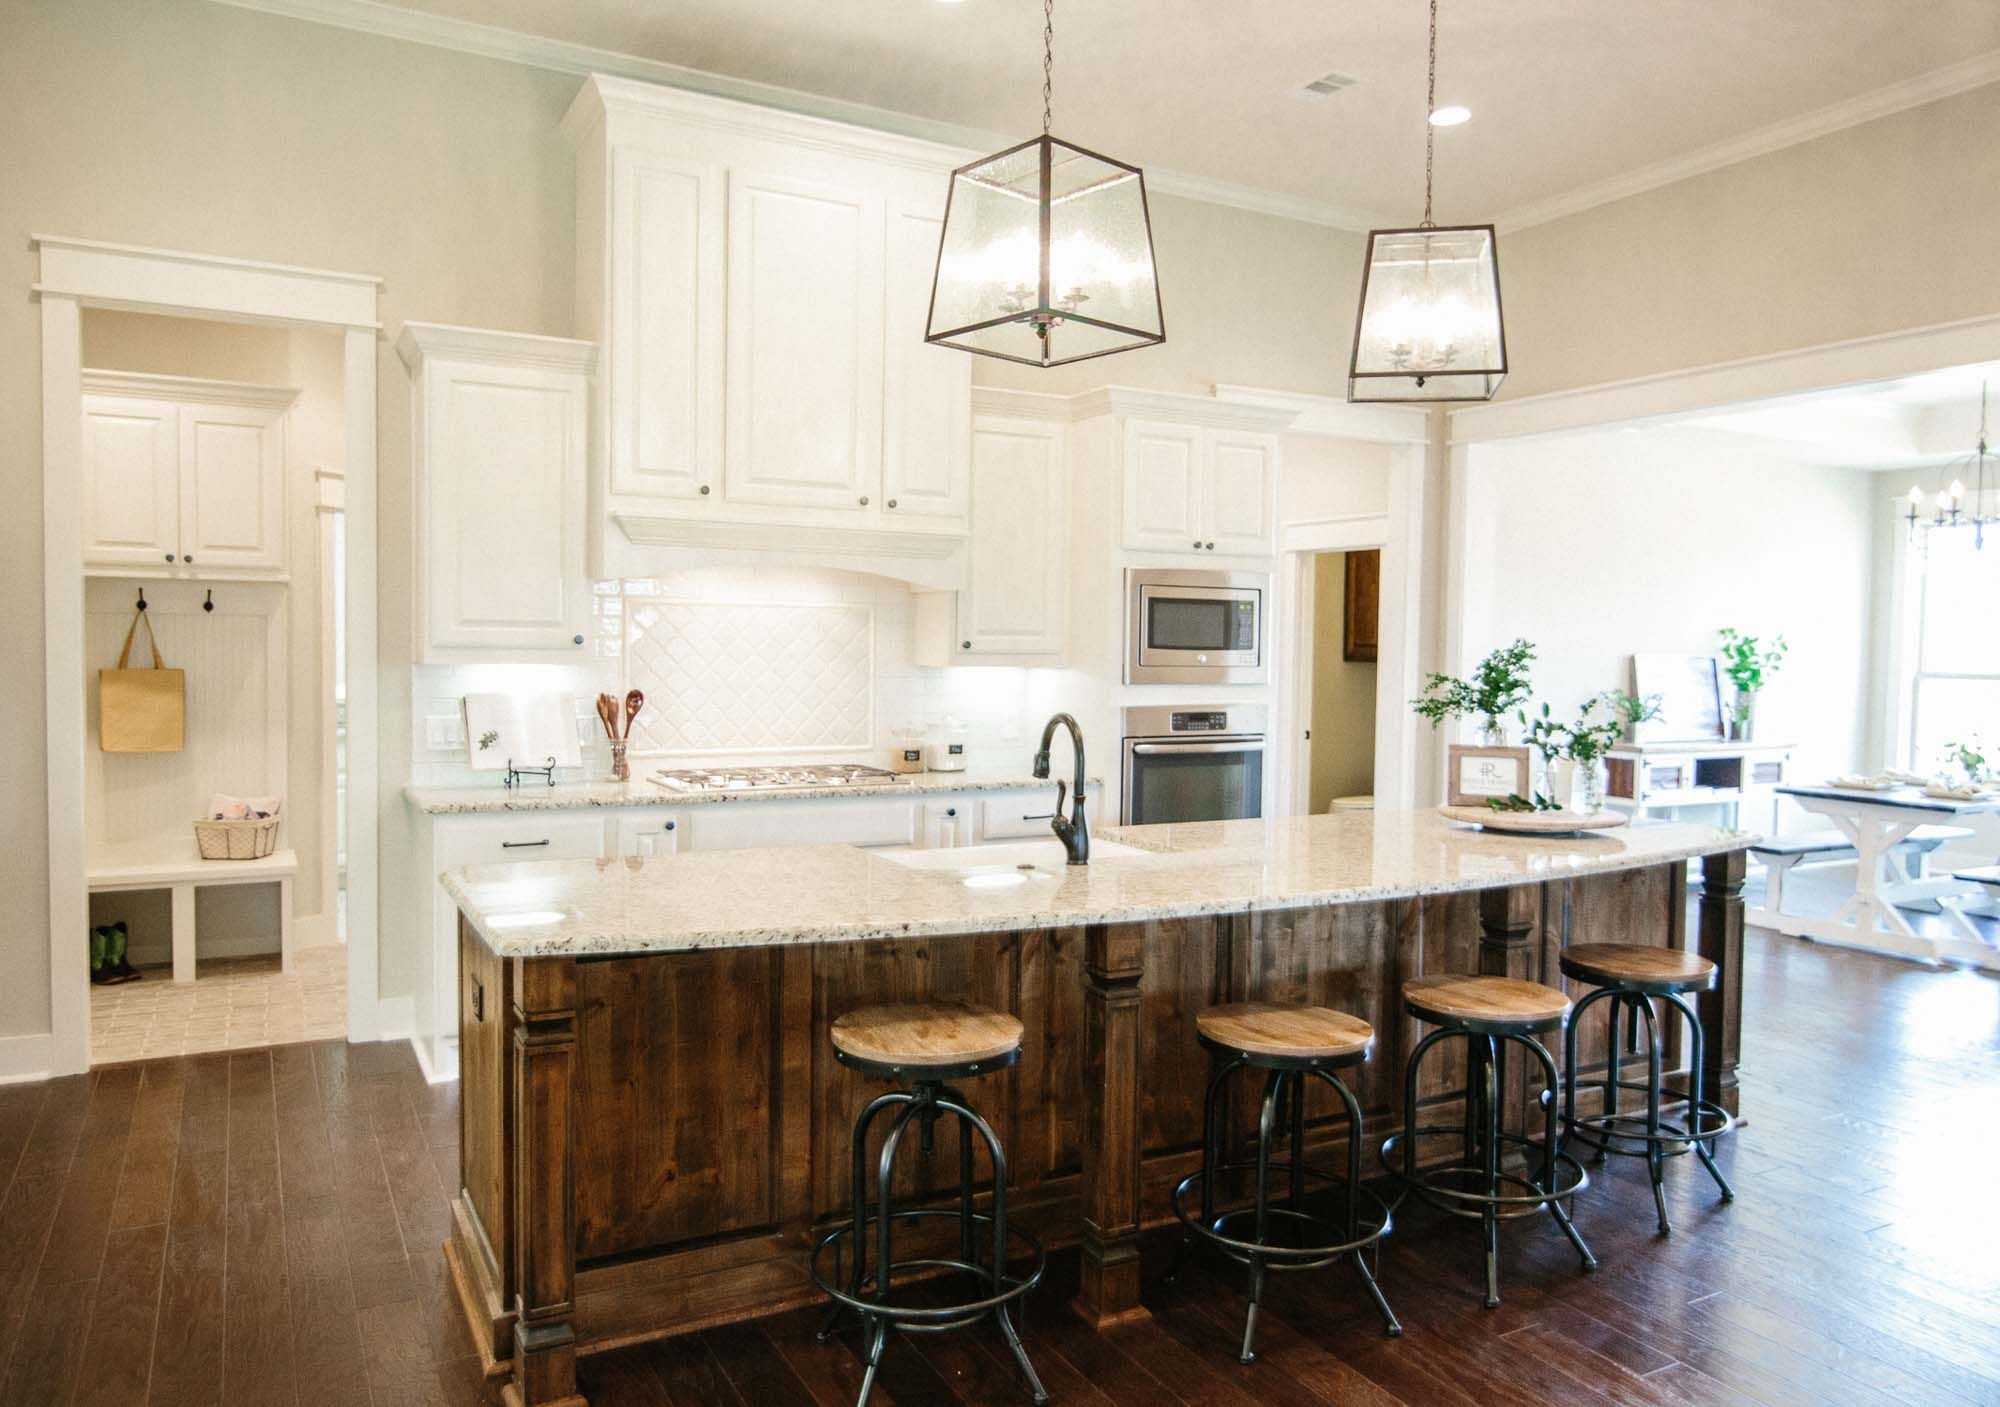 Open Concept Kitchen Inspiration Large Kitchen Island White Kitchen Concepts Open Concept Kitchen Living Room Floor Plans